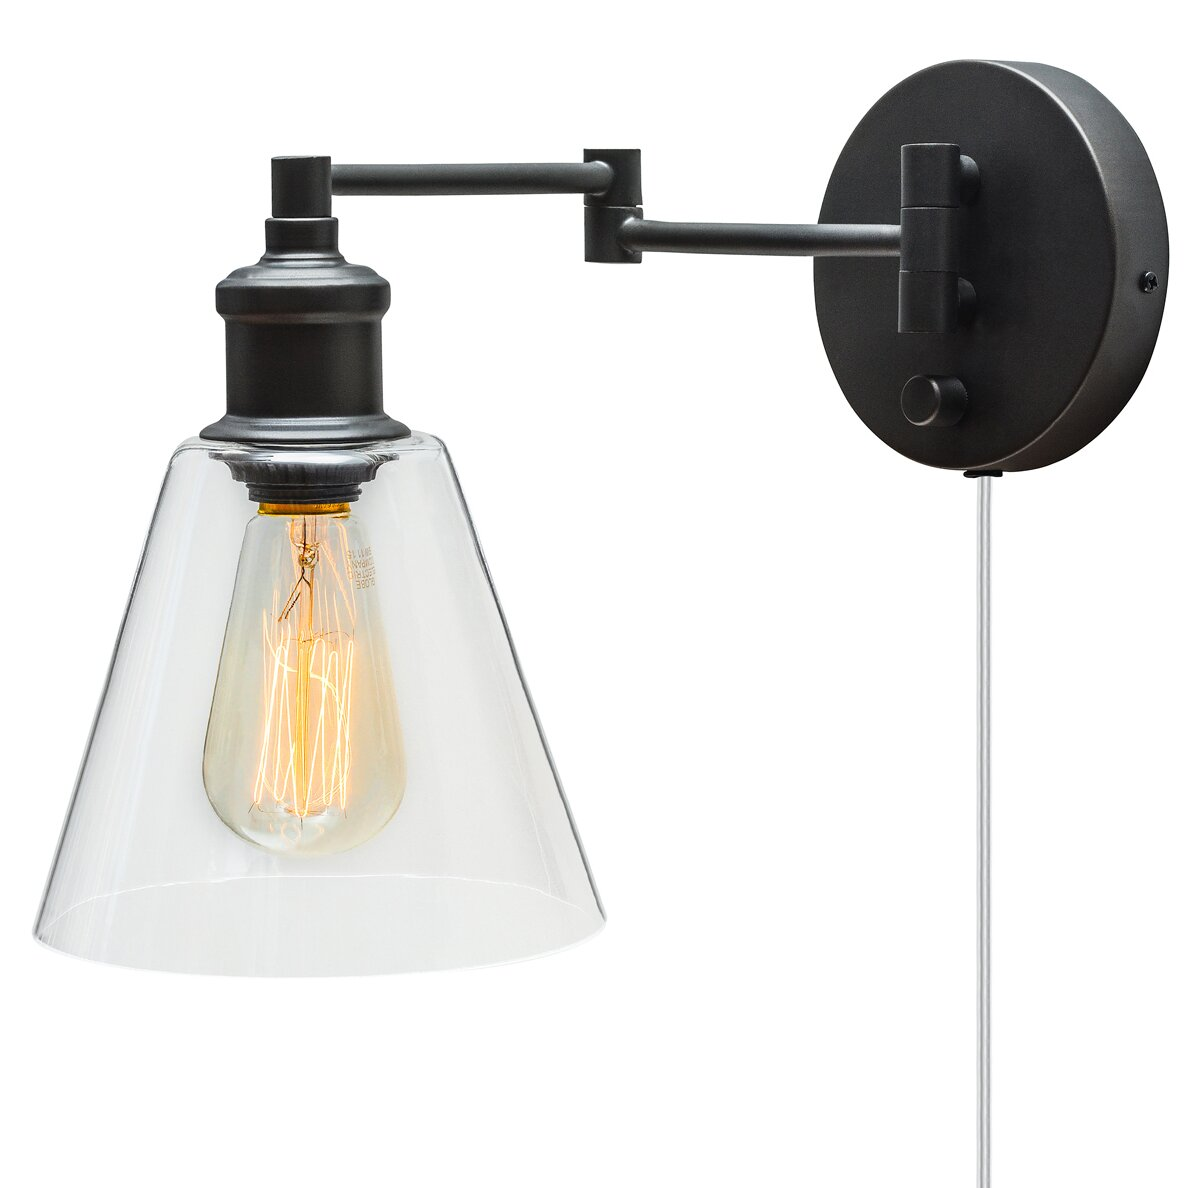 Wall Lights No Plug : Globe Electric Company Adison 1 Light Plug In Industrial Wall Sconce with Hardwire Conversion ...